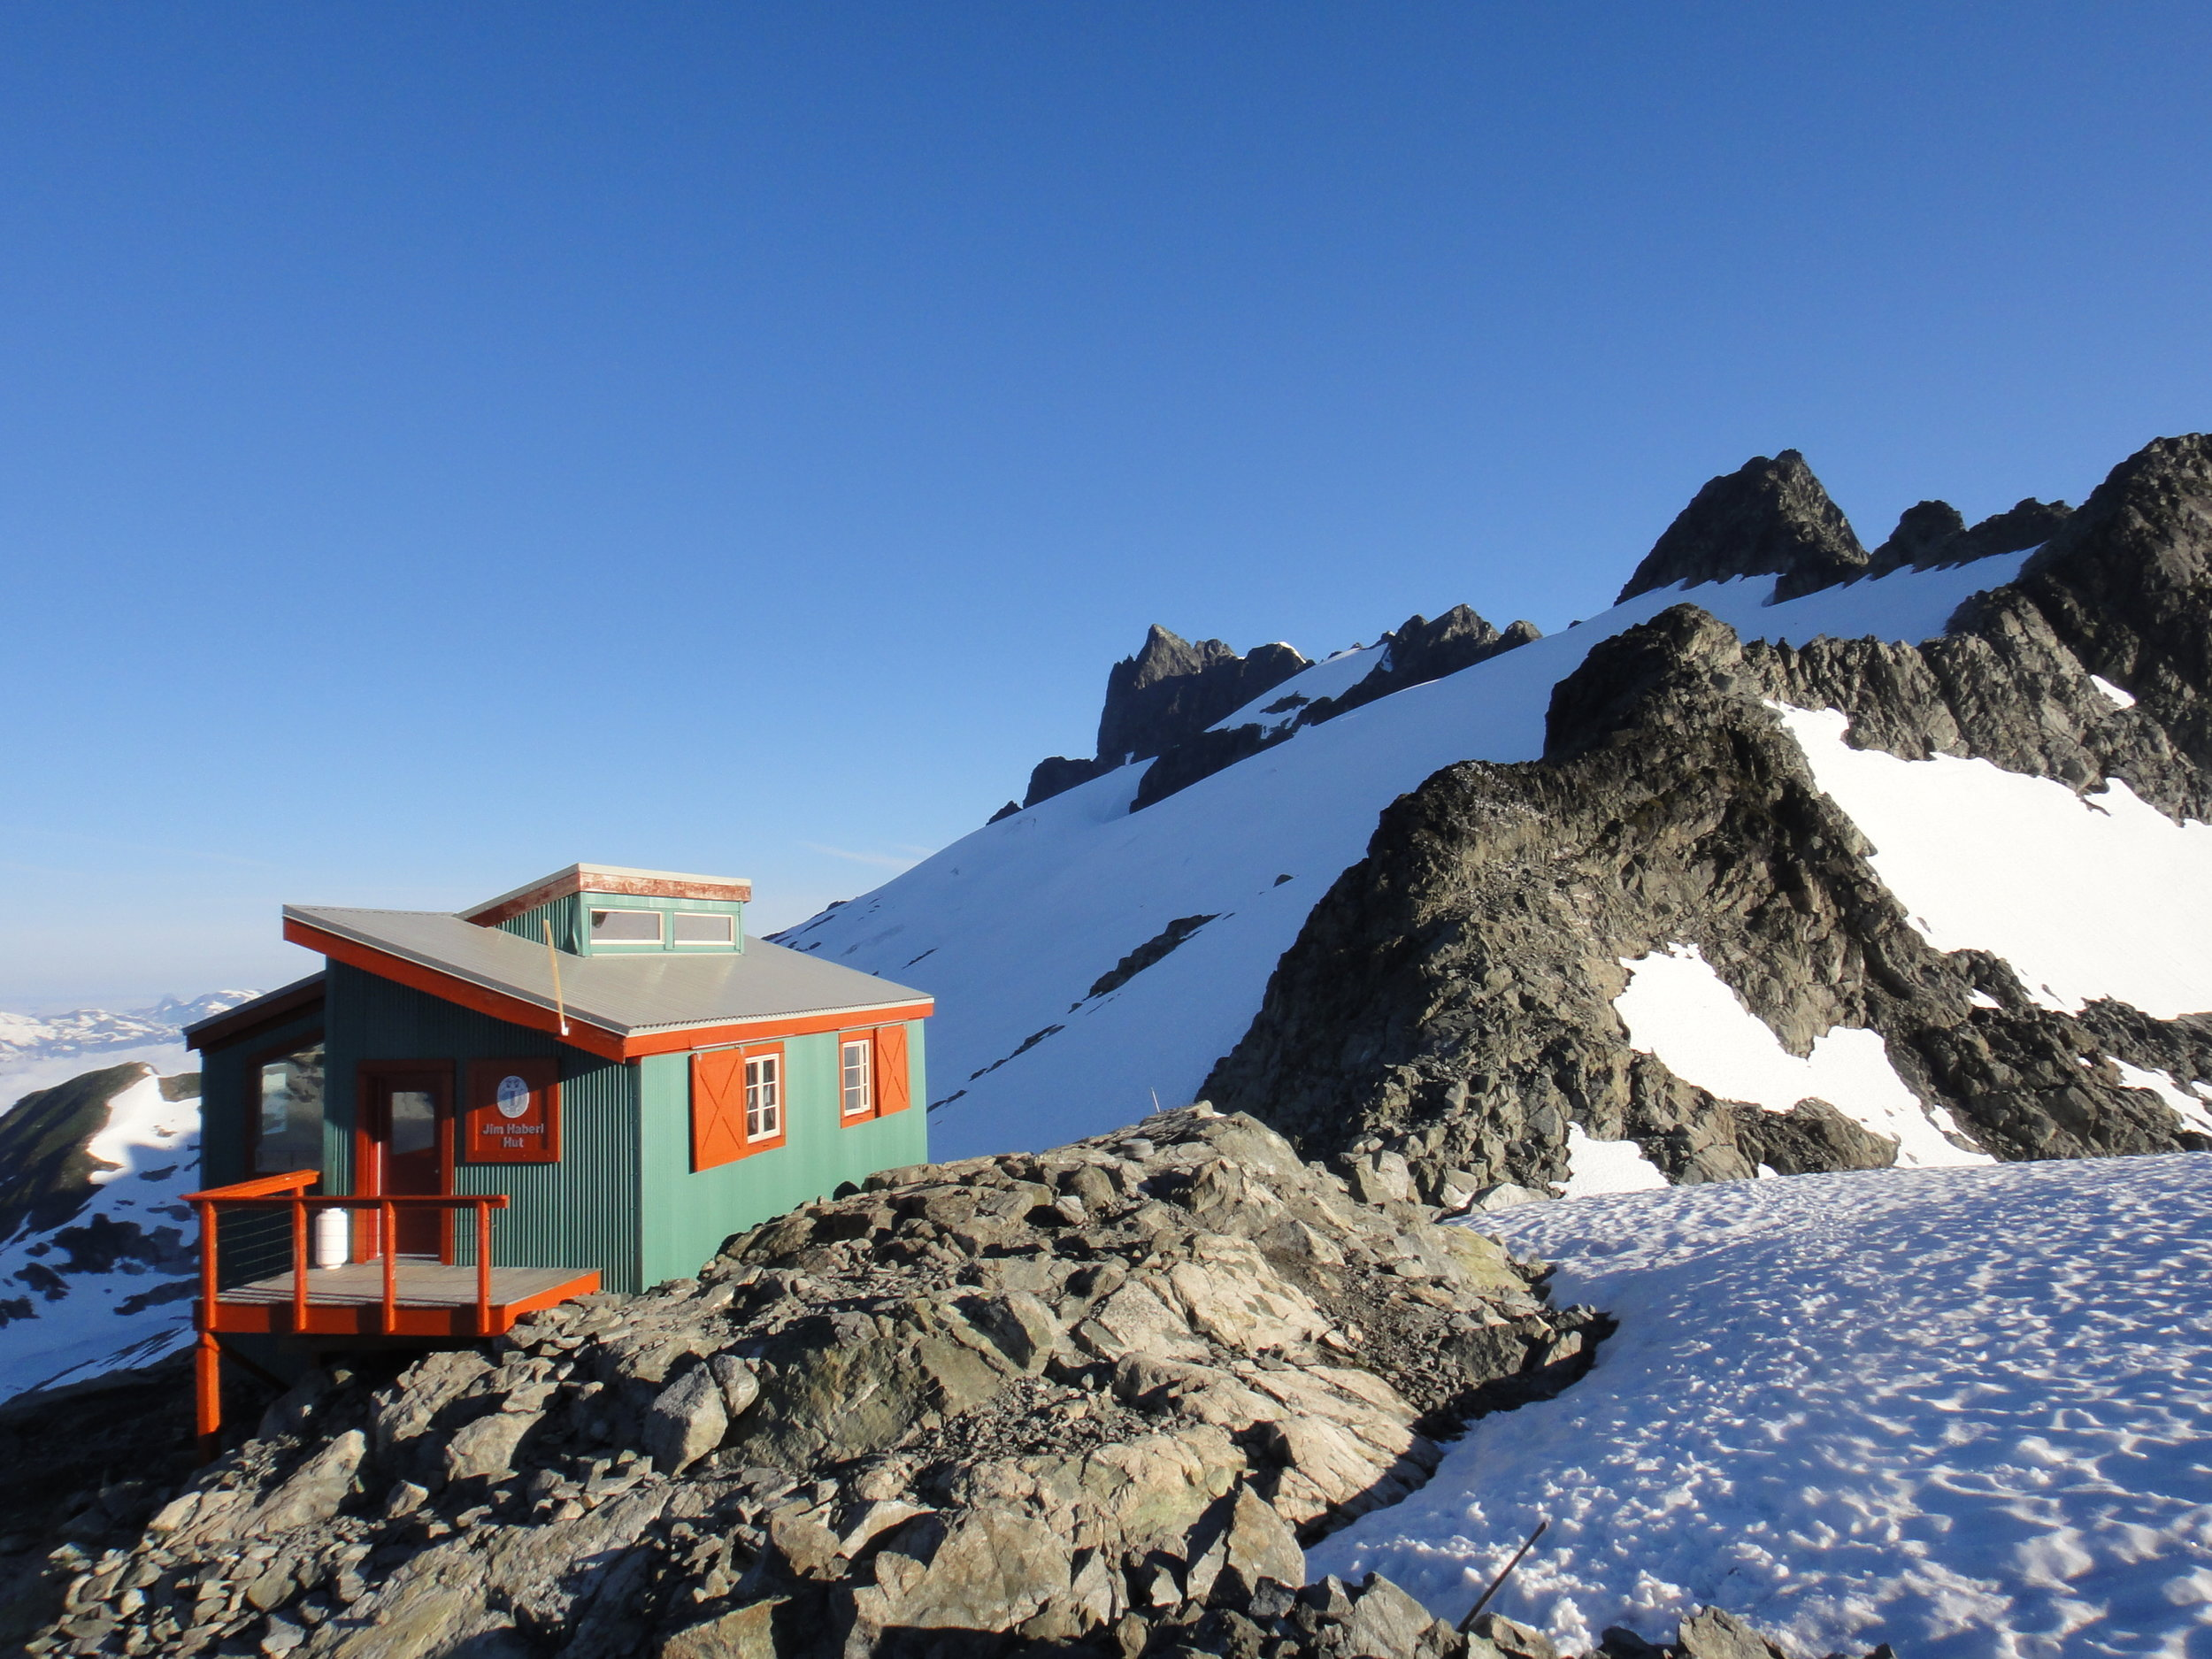 Jim Haberl Hut (Serratus Col):   For the higher, more remote Tantalus ridge area, from the Jim Haberl Hut at 6,700ft, to the Zenith col, Mt Dione, the Alpha ridge and Mt Ossa, allowing you and your group to access new heights for Alpine climbing and skiing in both summer and winter.   Cost:  $600 one way, $1200 round trip - for up to 5 passengers    Click Here   to reserve the cabin.